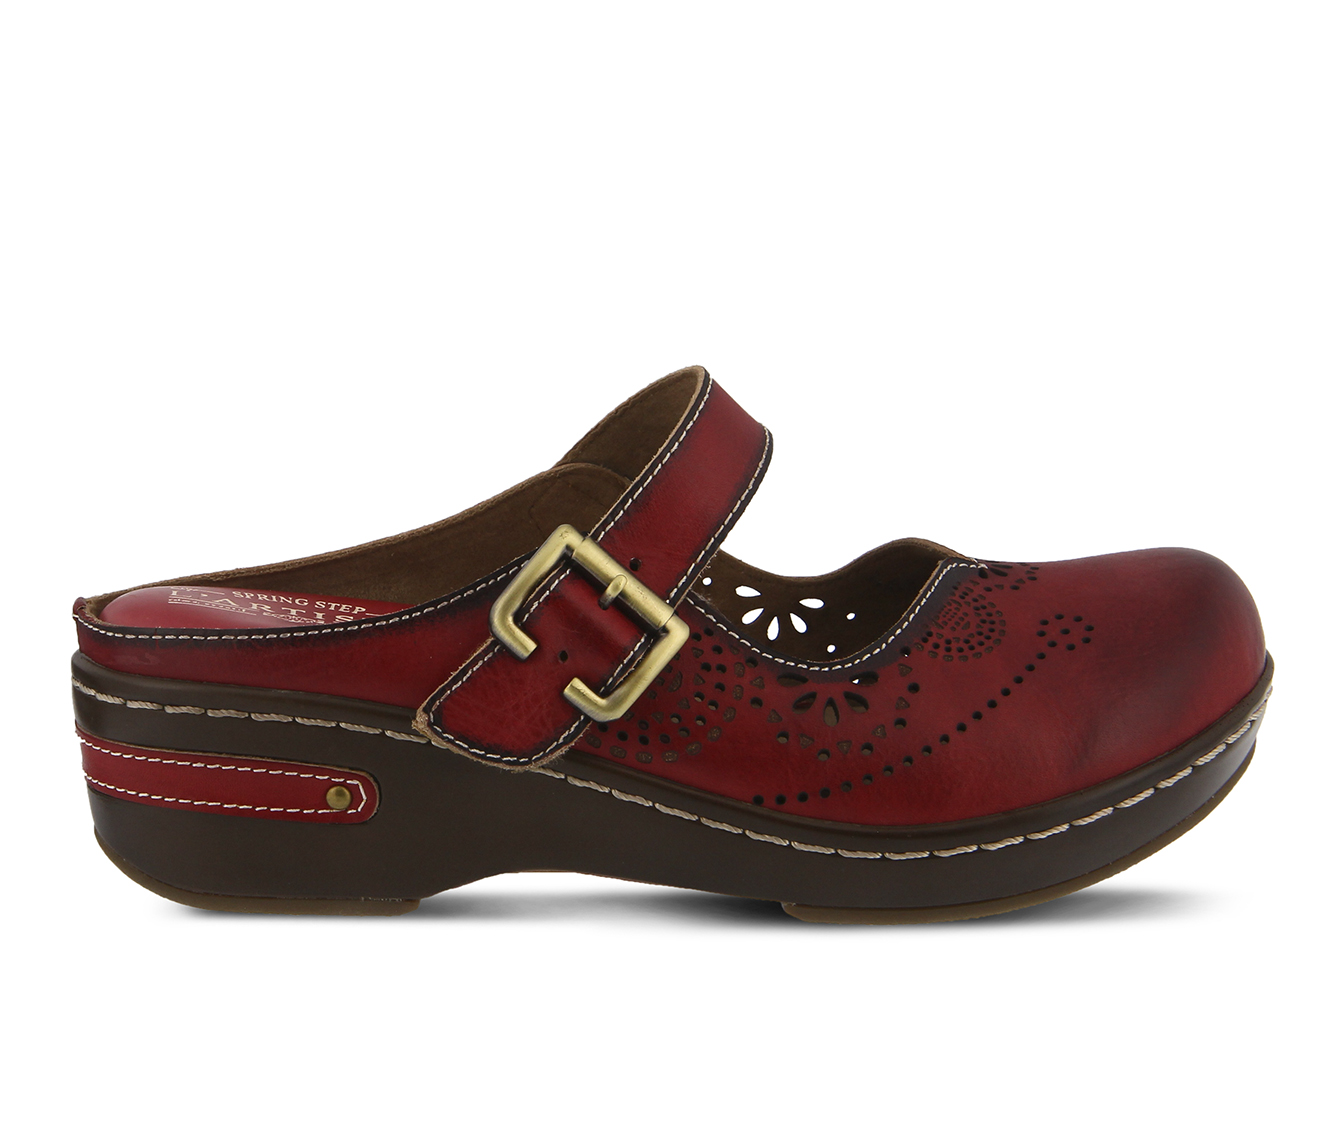 L'Artiste Aneria Women's Shoe (Red Leather)